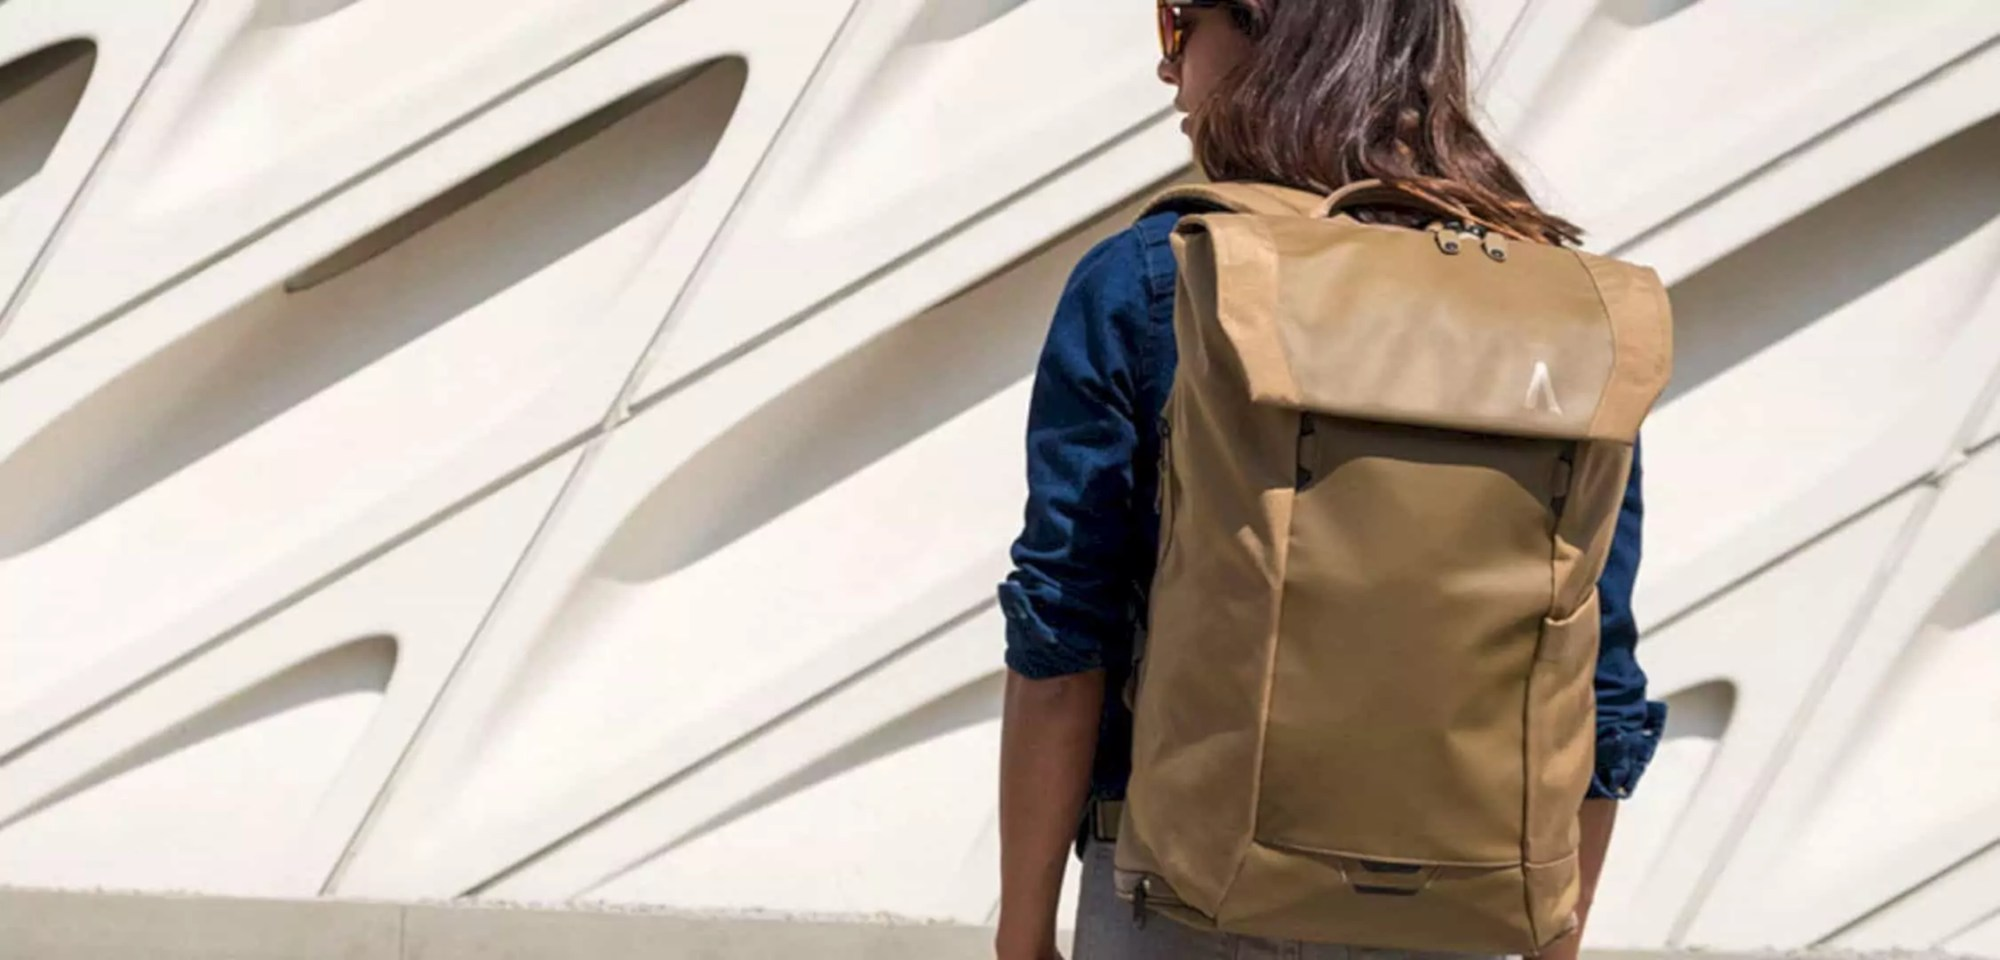 Errant: The Most Fluid Everyday Backpack